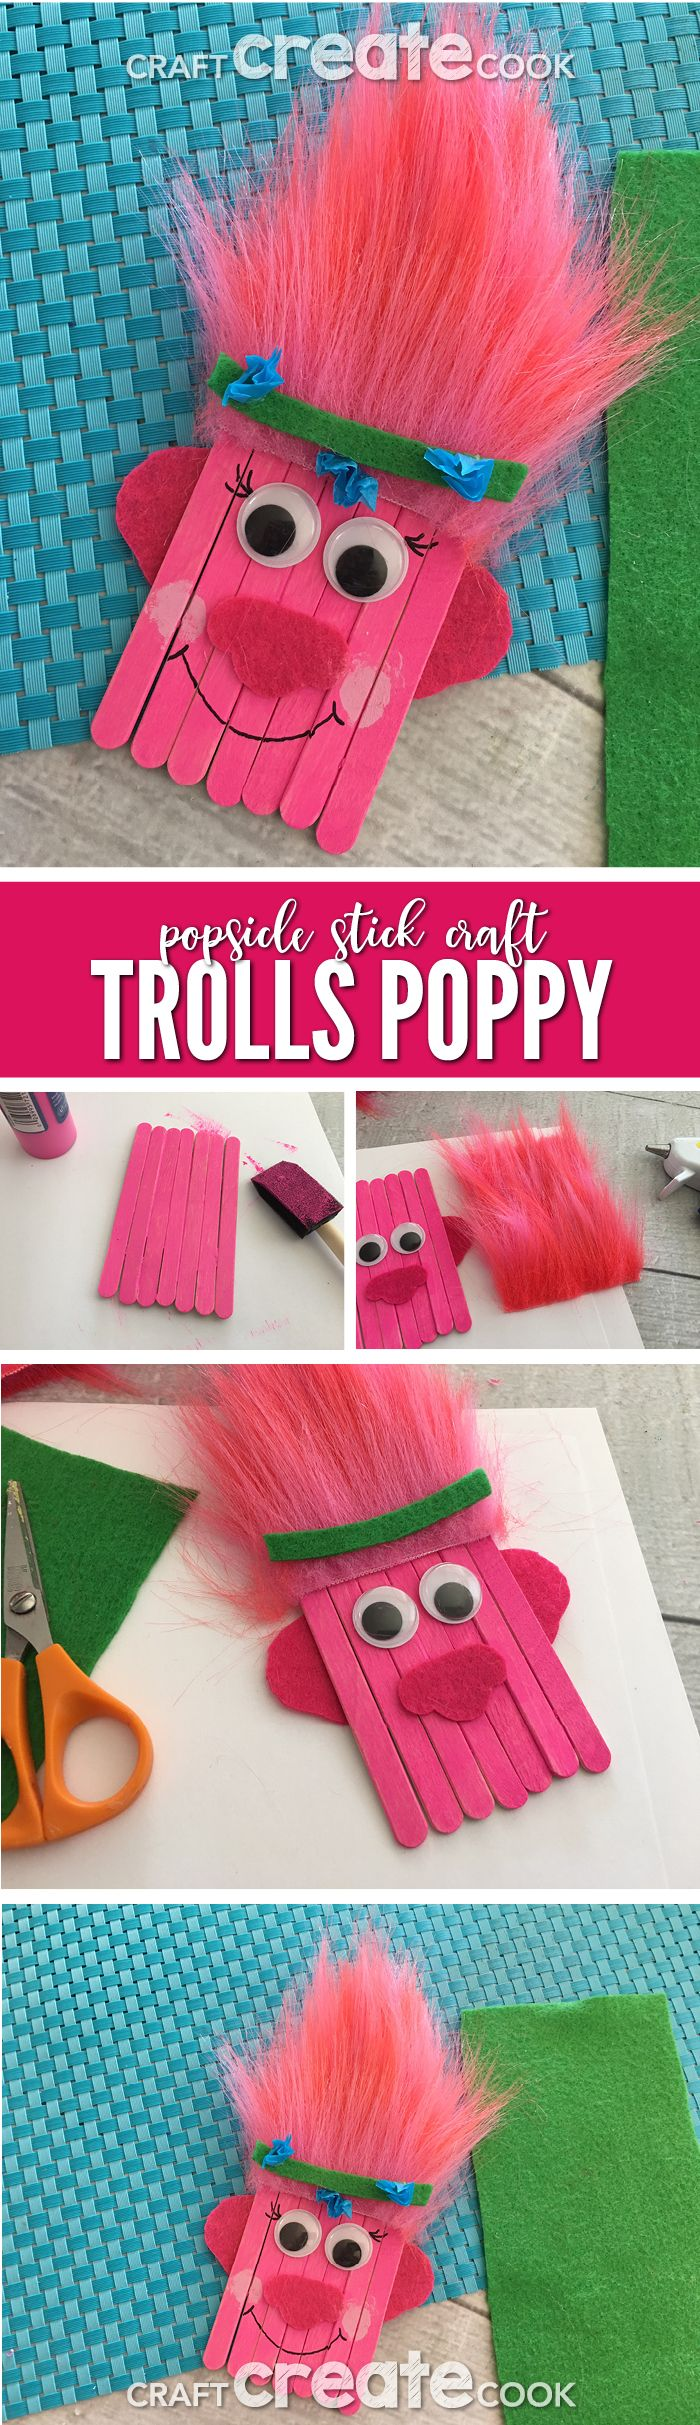 Trolls Poppy Popsicle Stick Craft for Kids via @CraftCreatCook1